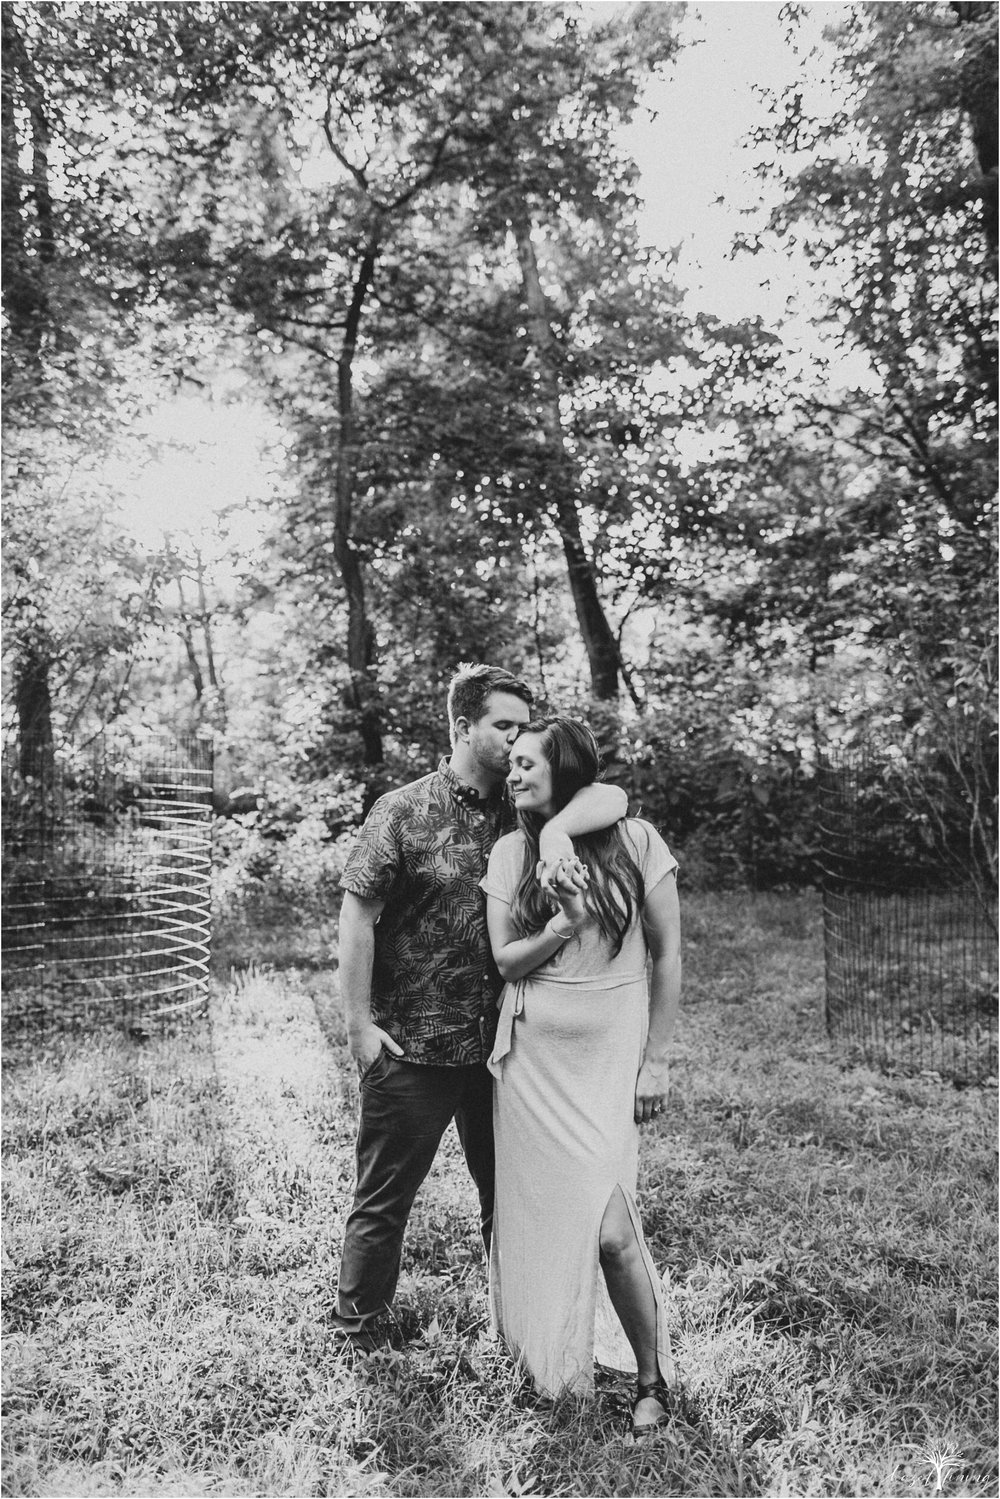 kelsey-delaney-kevin-jordan-tyler-state-park-newtown-pennsylvania-golden-hour-sunset-engagement-session-hazel-lining-travel-wedding-elopement-photography_0080.jpg